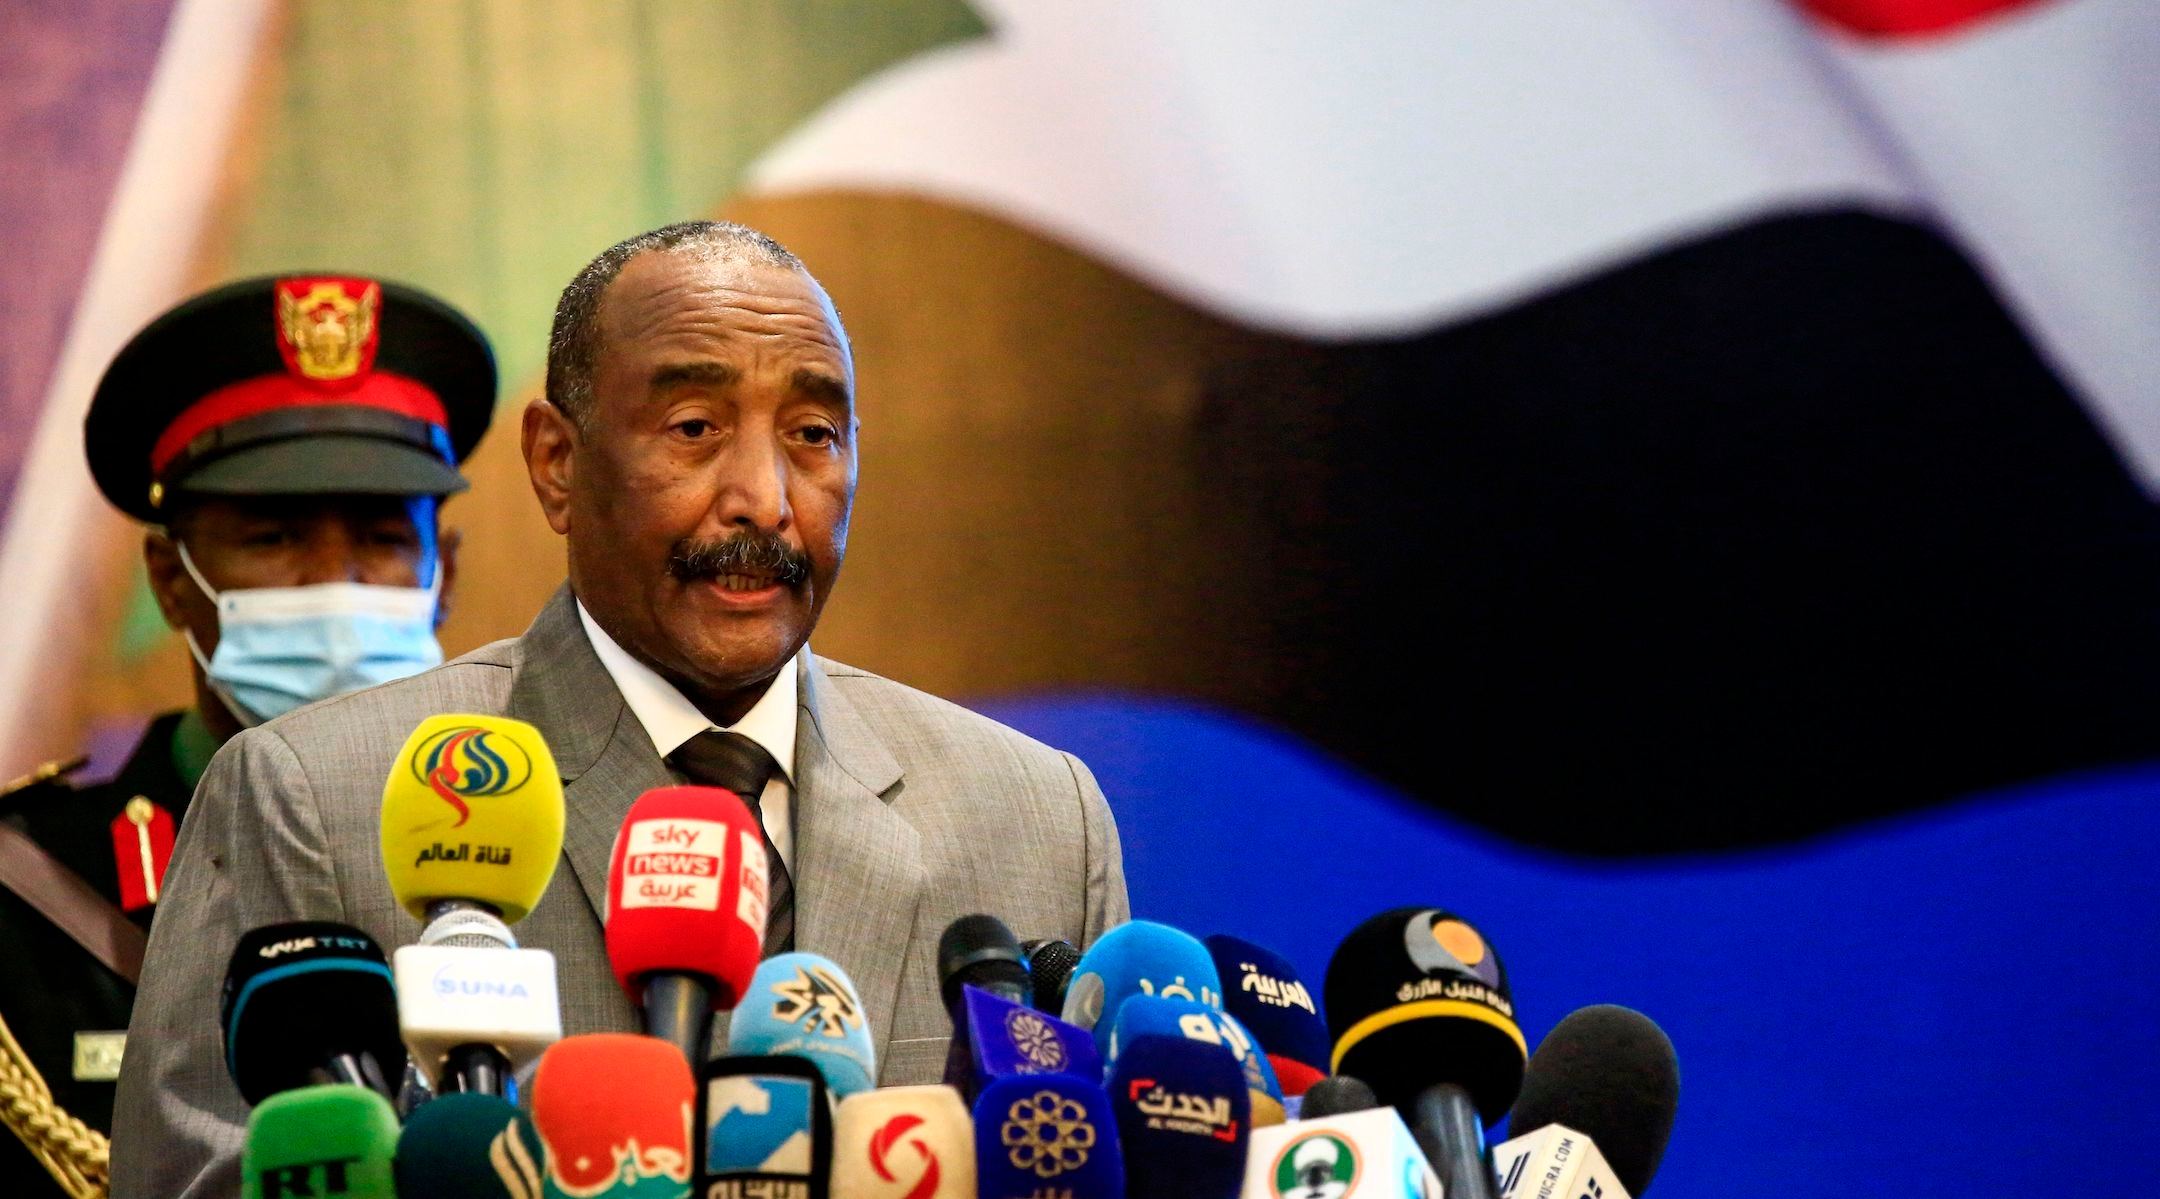 Sudan will normalize ties with Israel, Trump announces